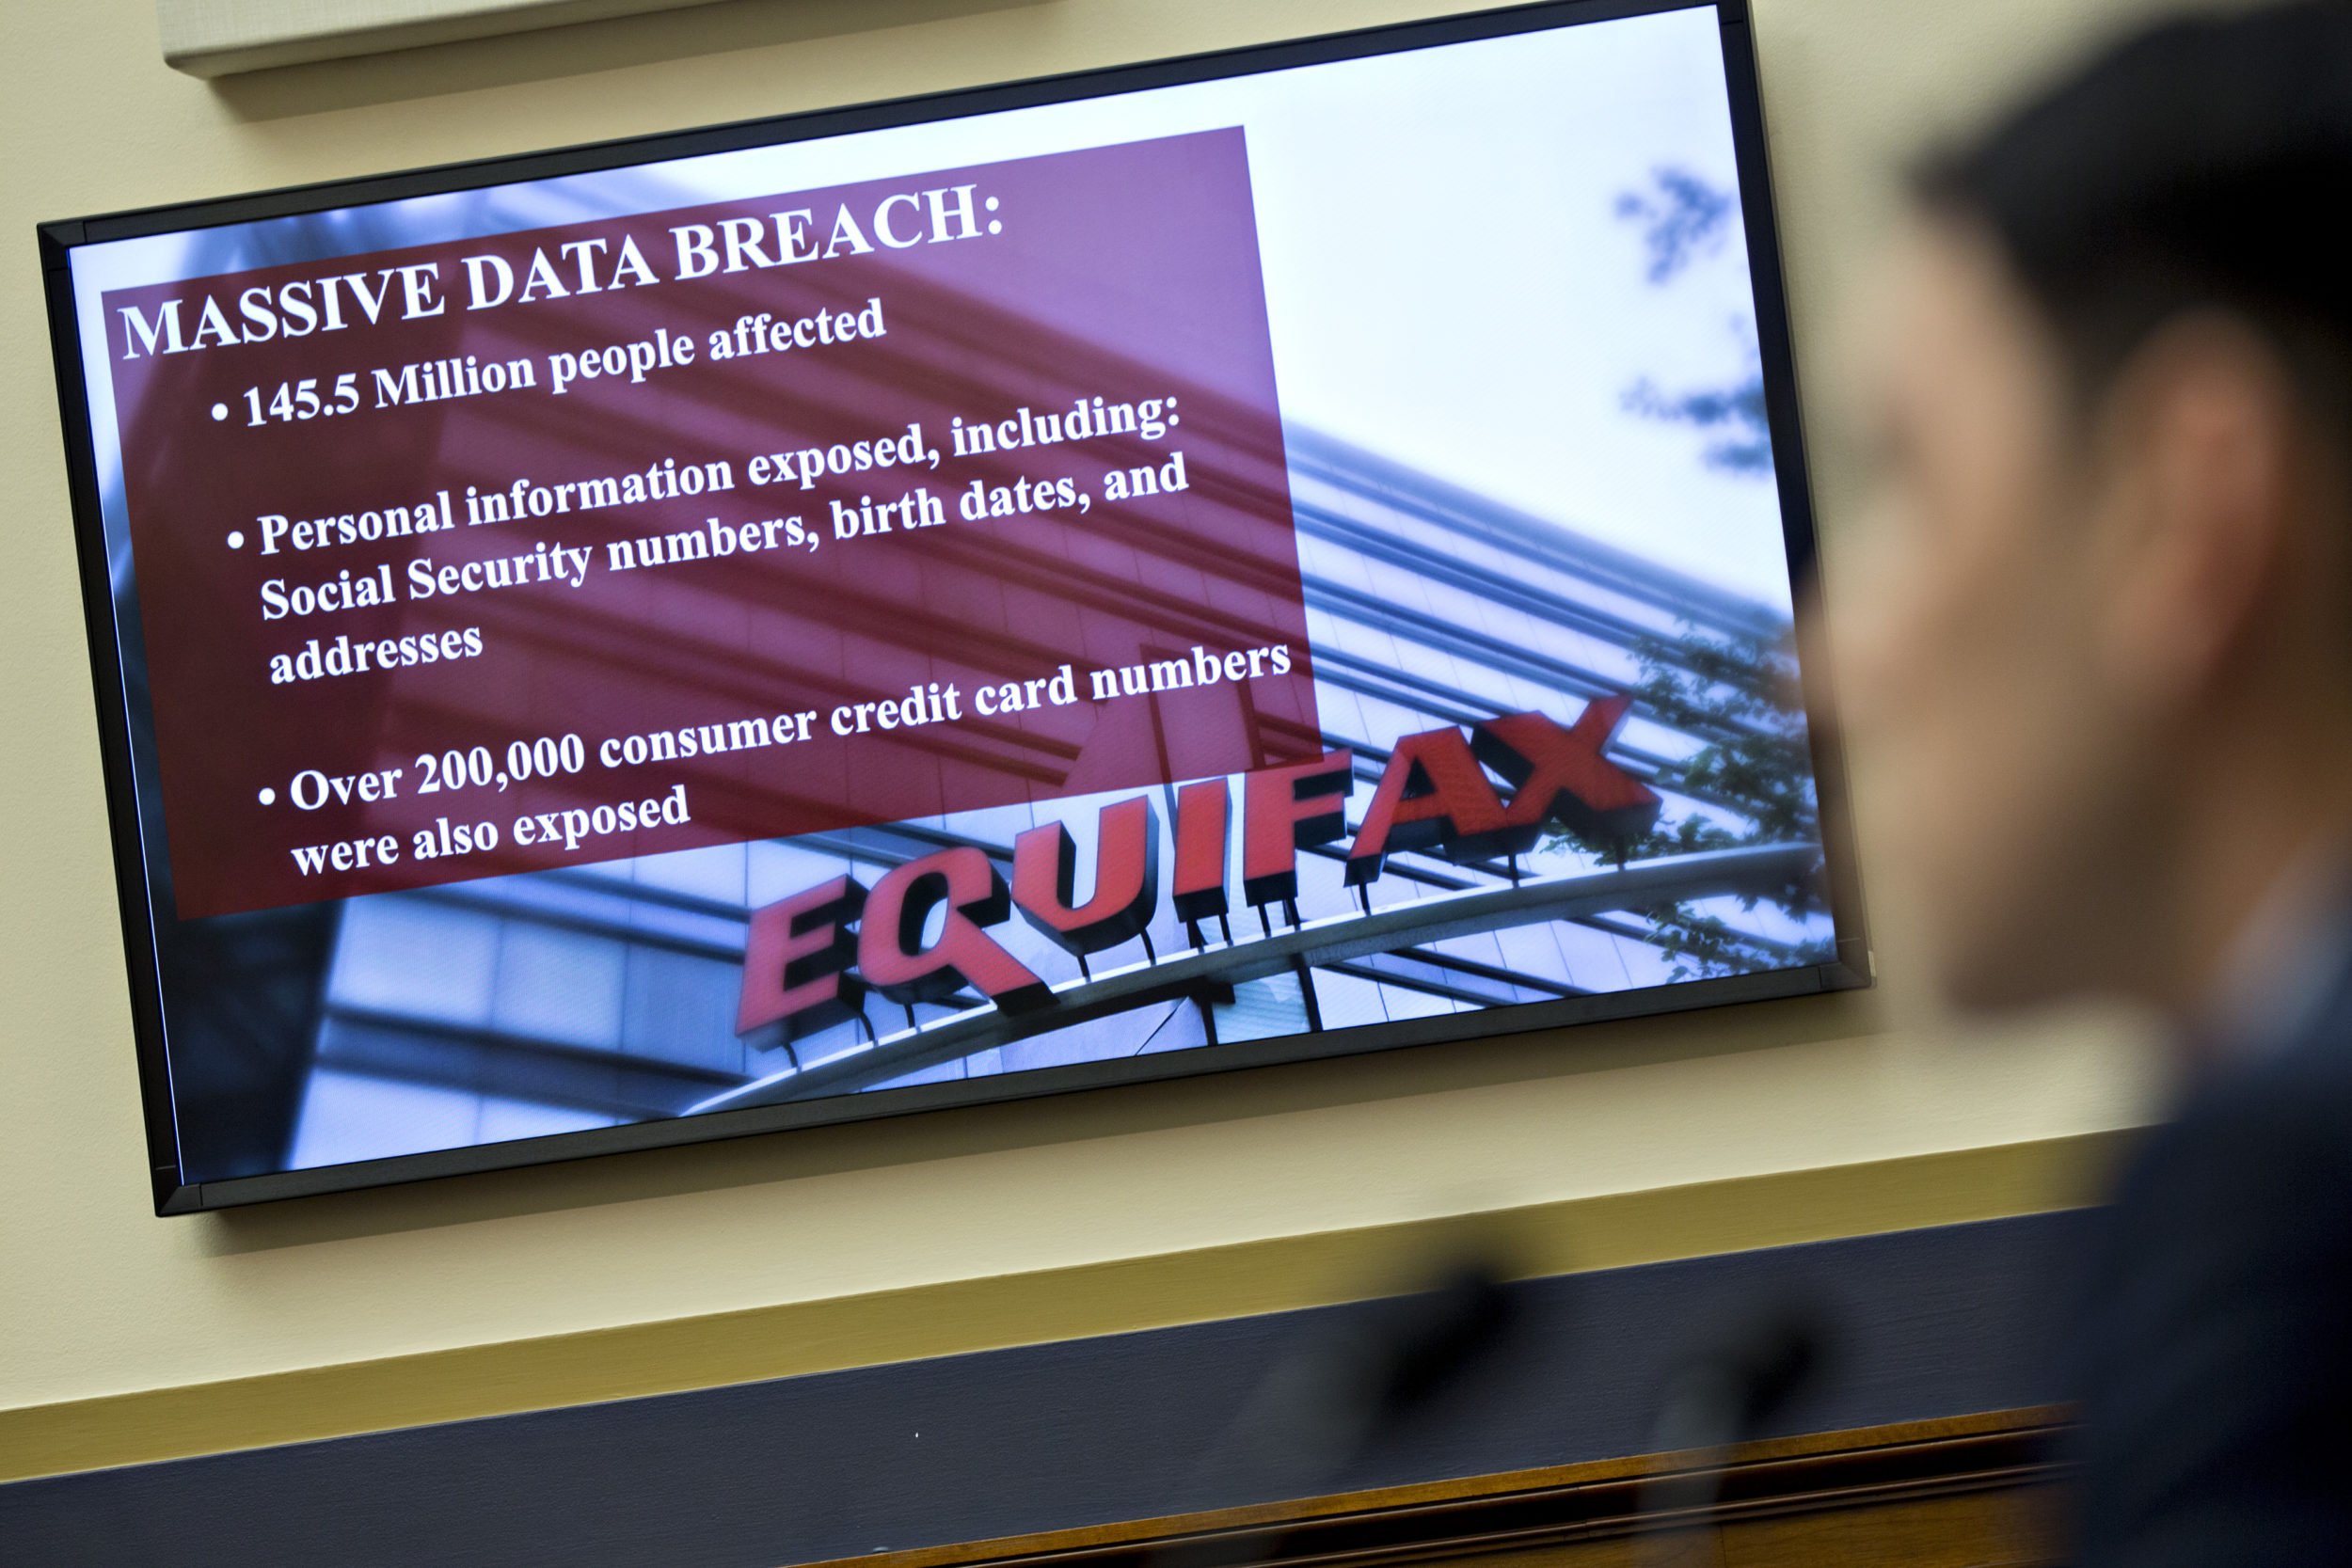 So, the Equifax data breach was actually worse than we thought